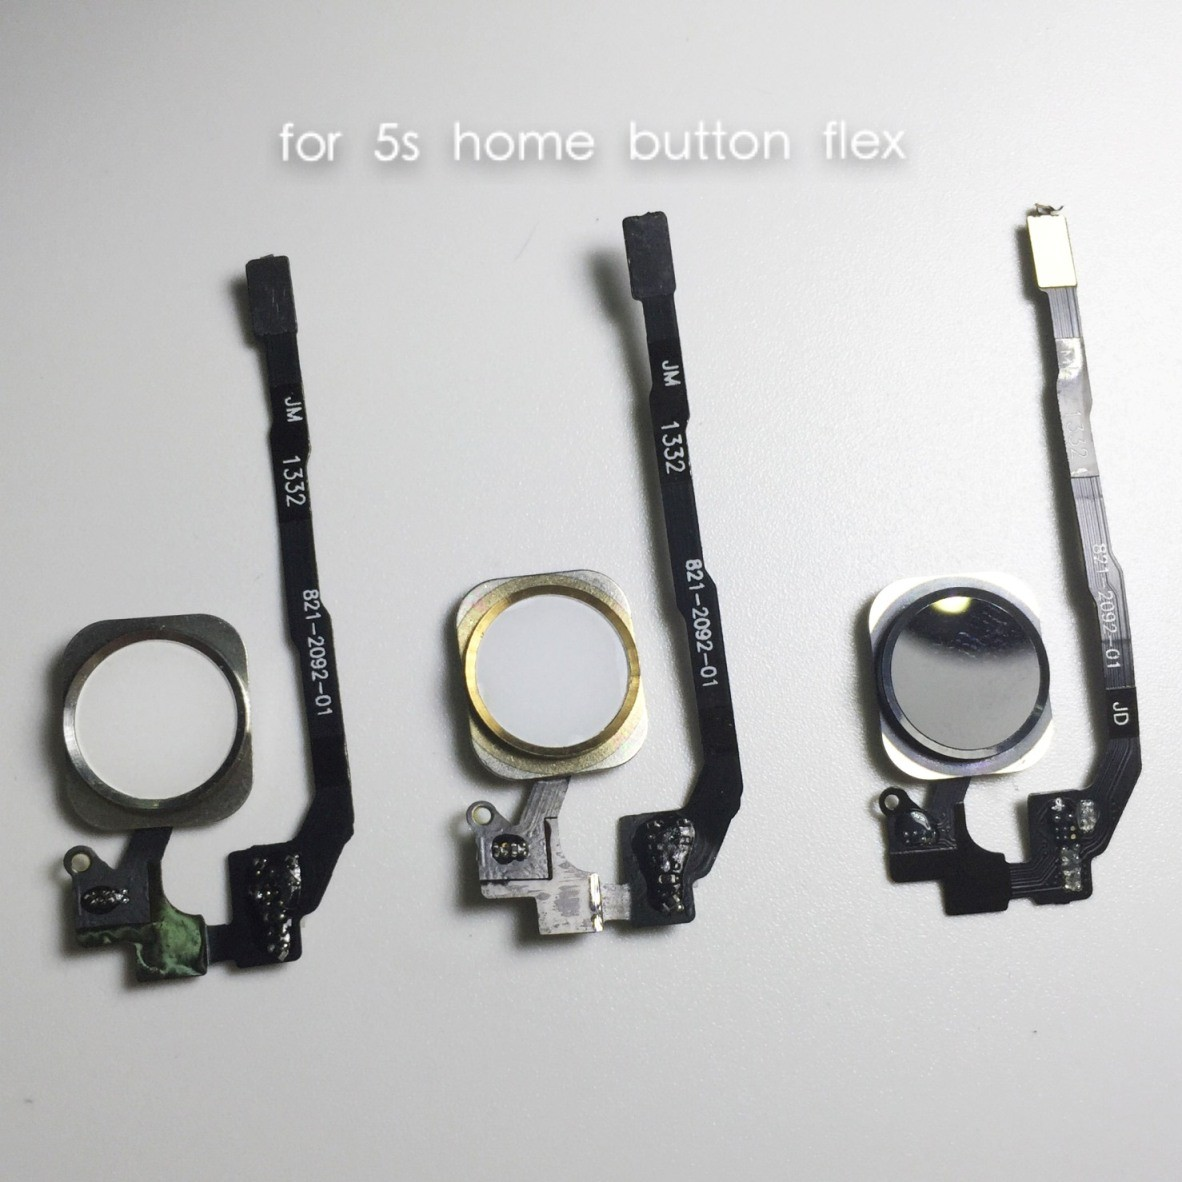 Mobile Phone Home Button Flex Cable for iPhone 5s